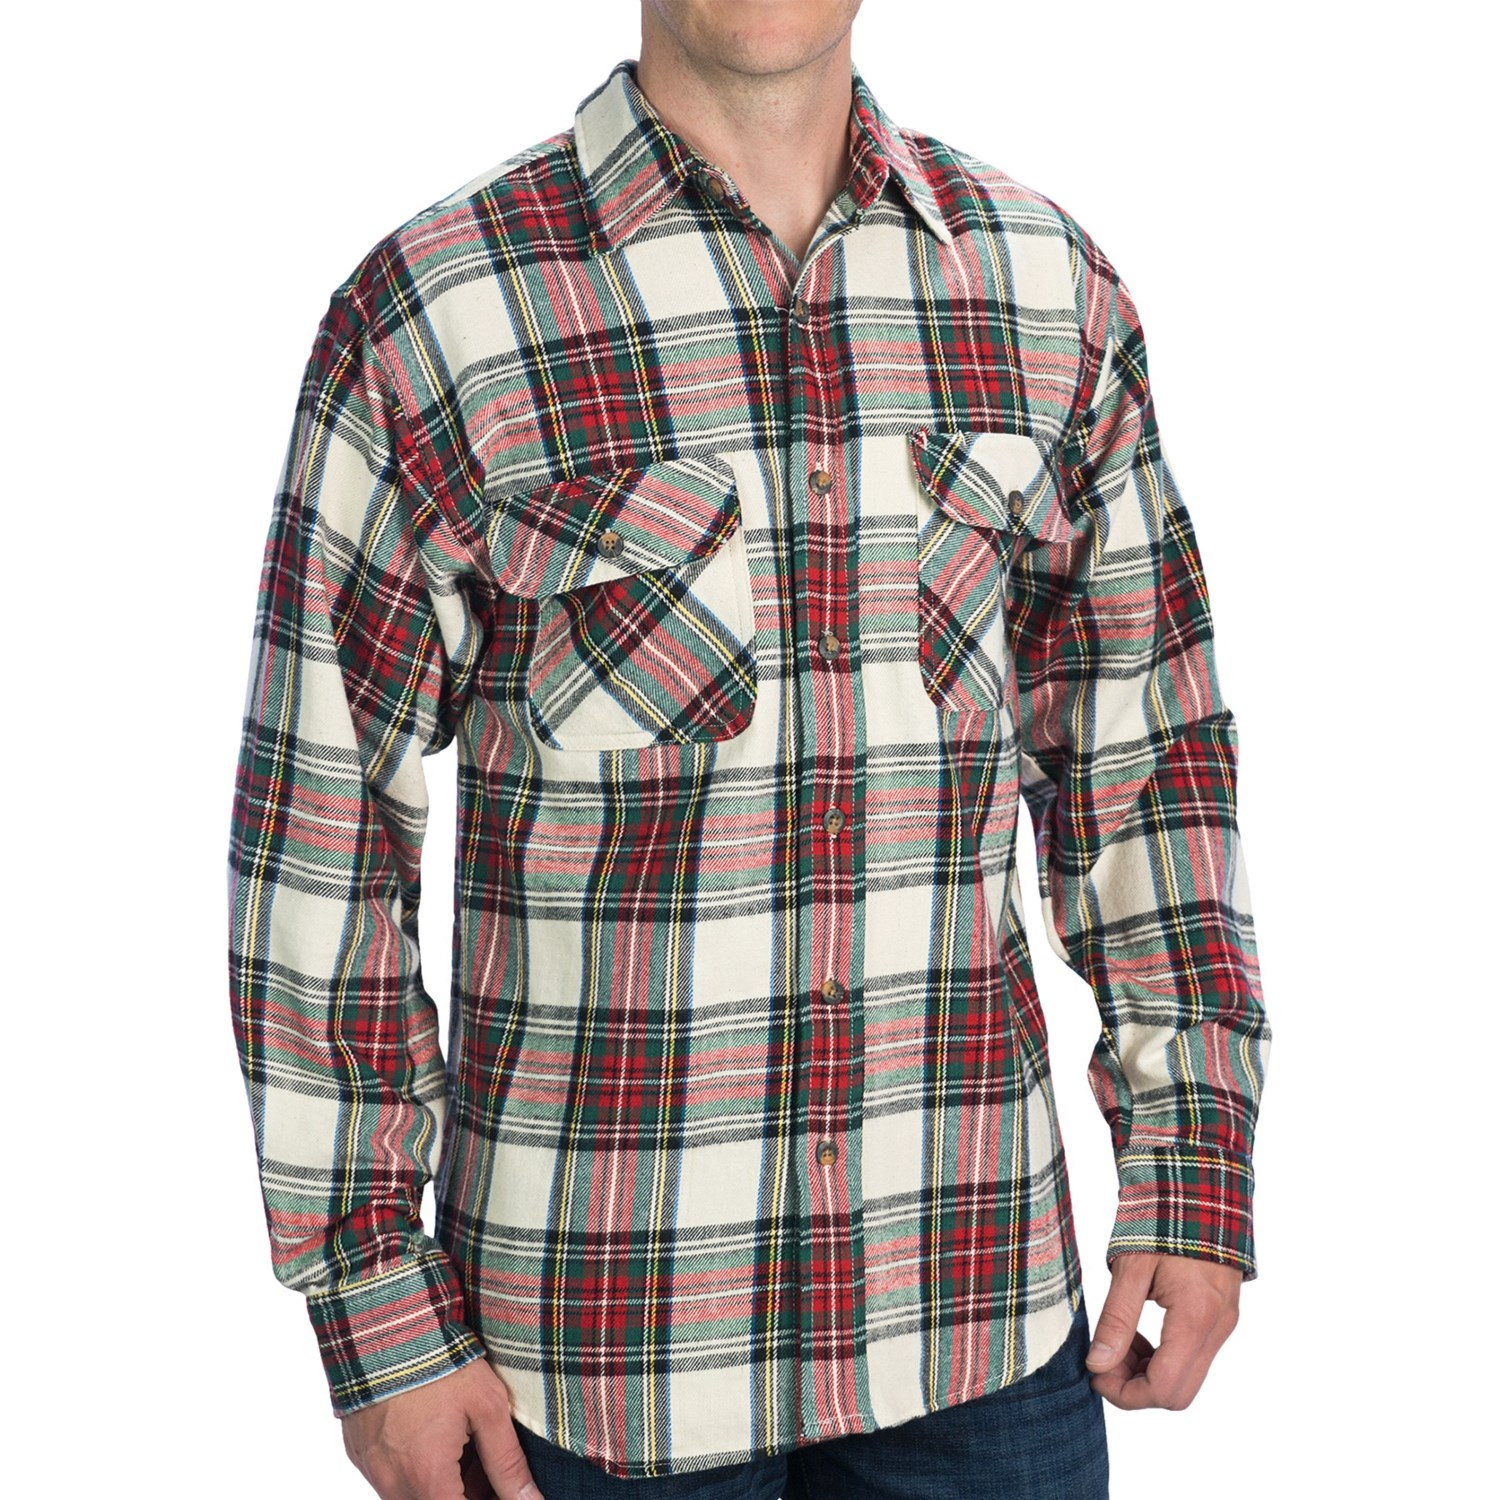 Kilimanjaro Brawney Tartan Plaid Flannel Shirt Long